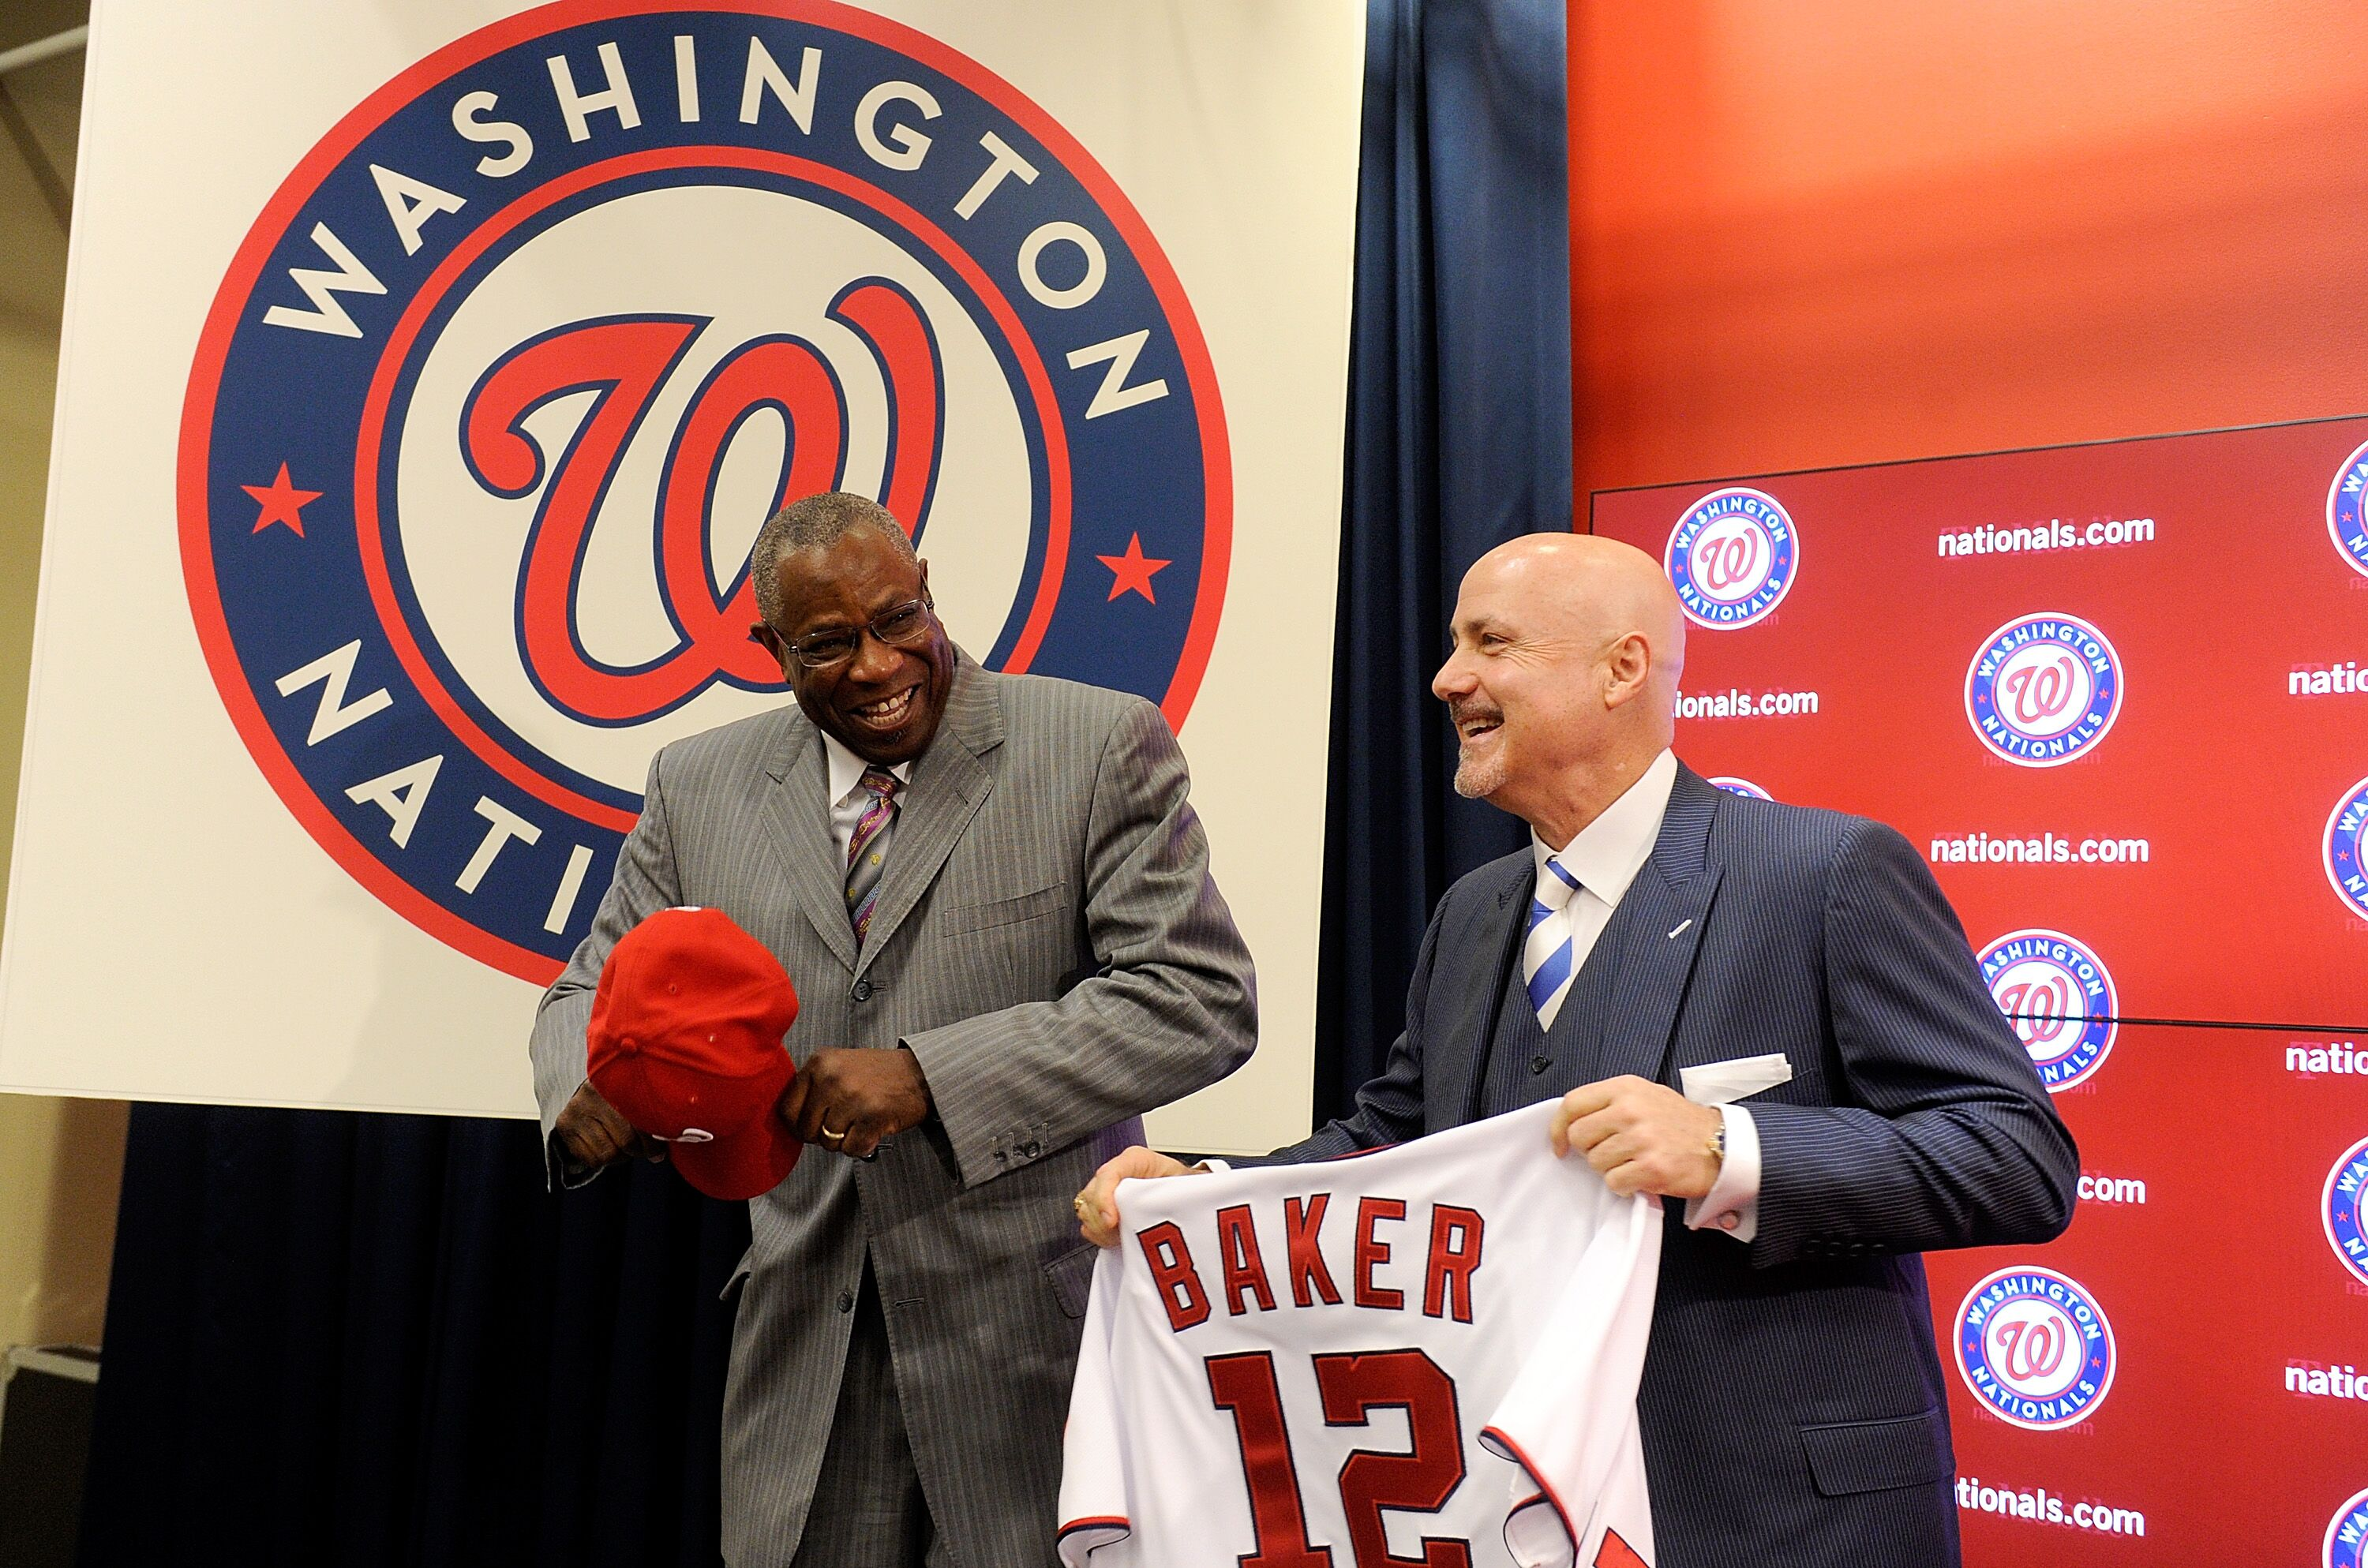 495848766-washington-nationals-introduce-dusty-baker.jpg